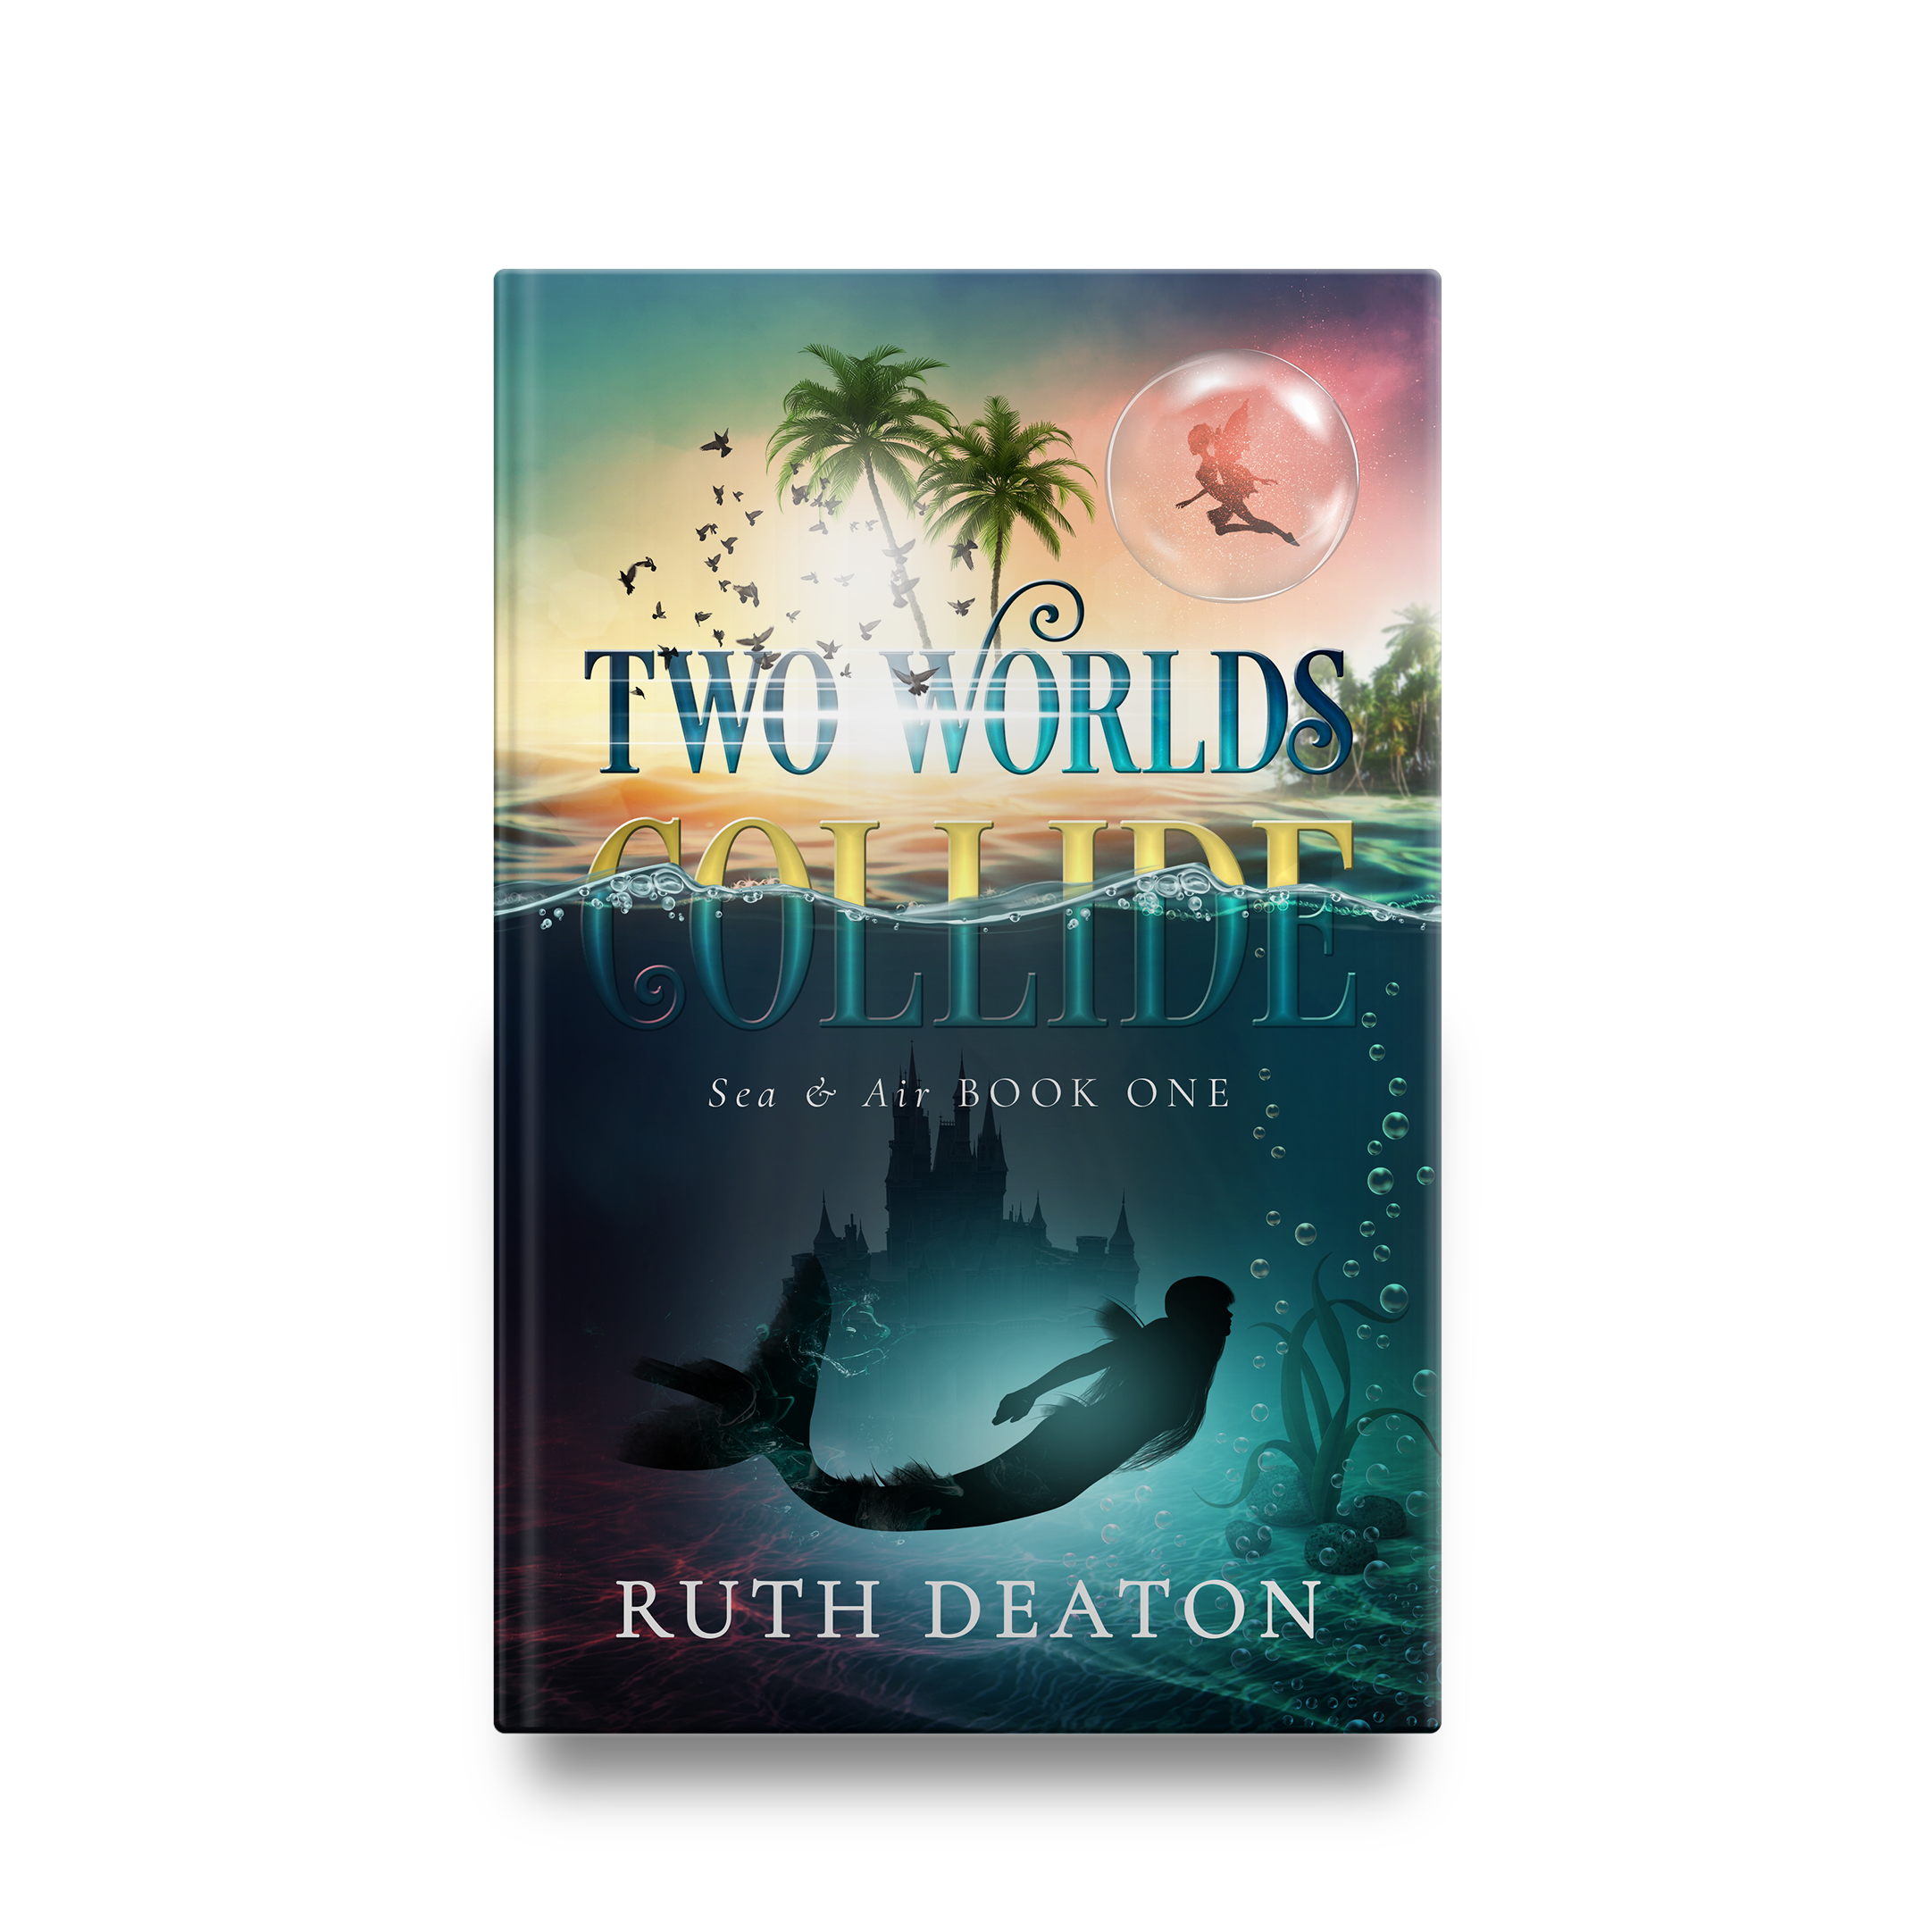 Ruth Deaton's Two Worlds Collide || Designed by TheThatchery.com